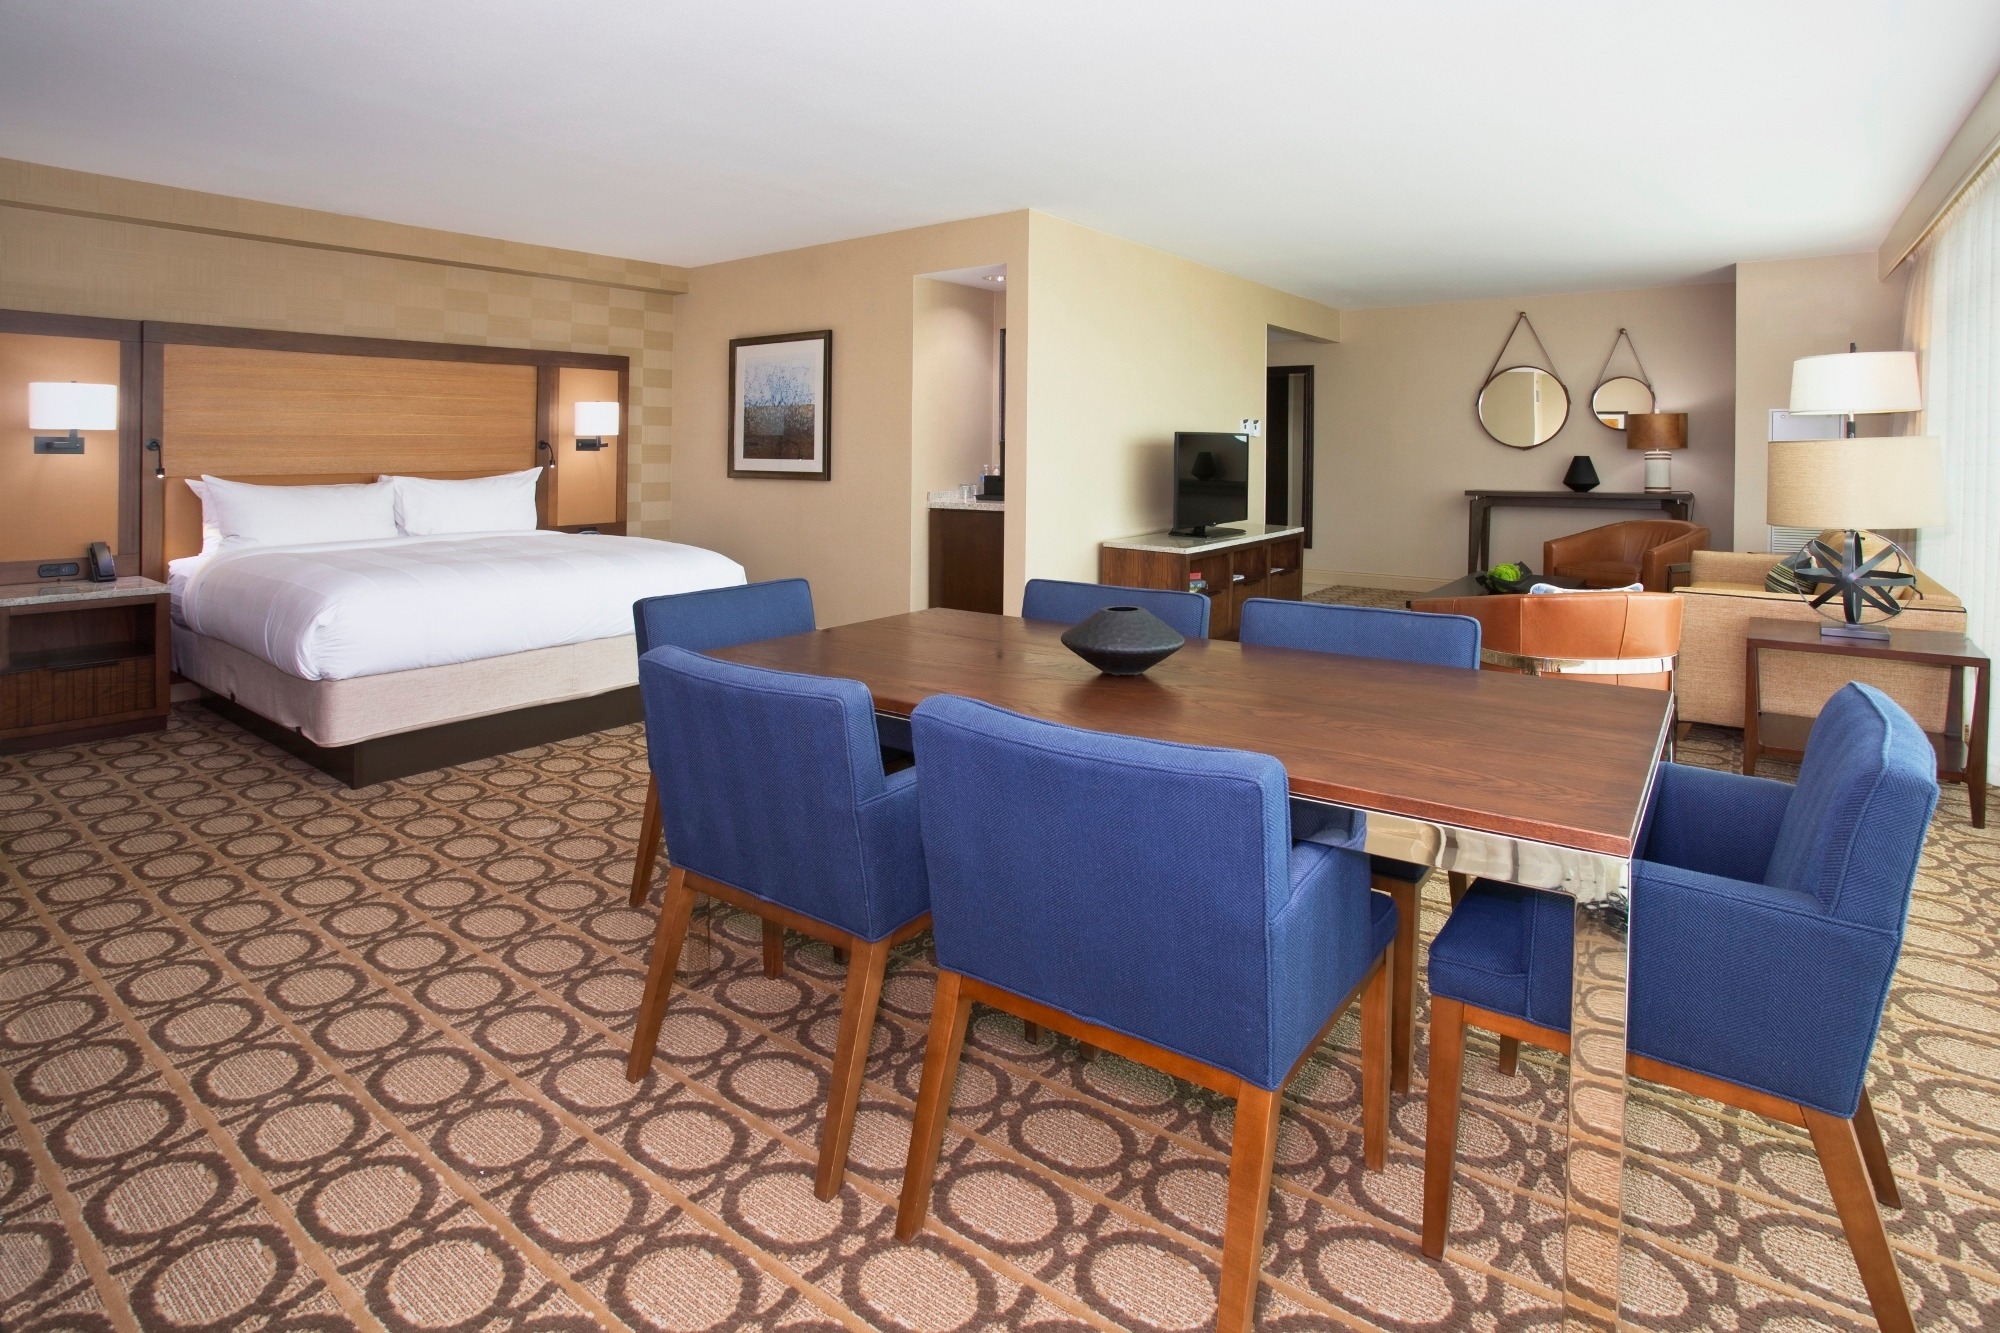 Denver Marriott Westminster image 8